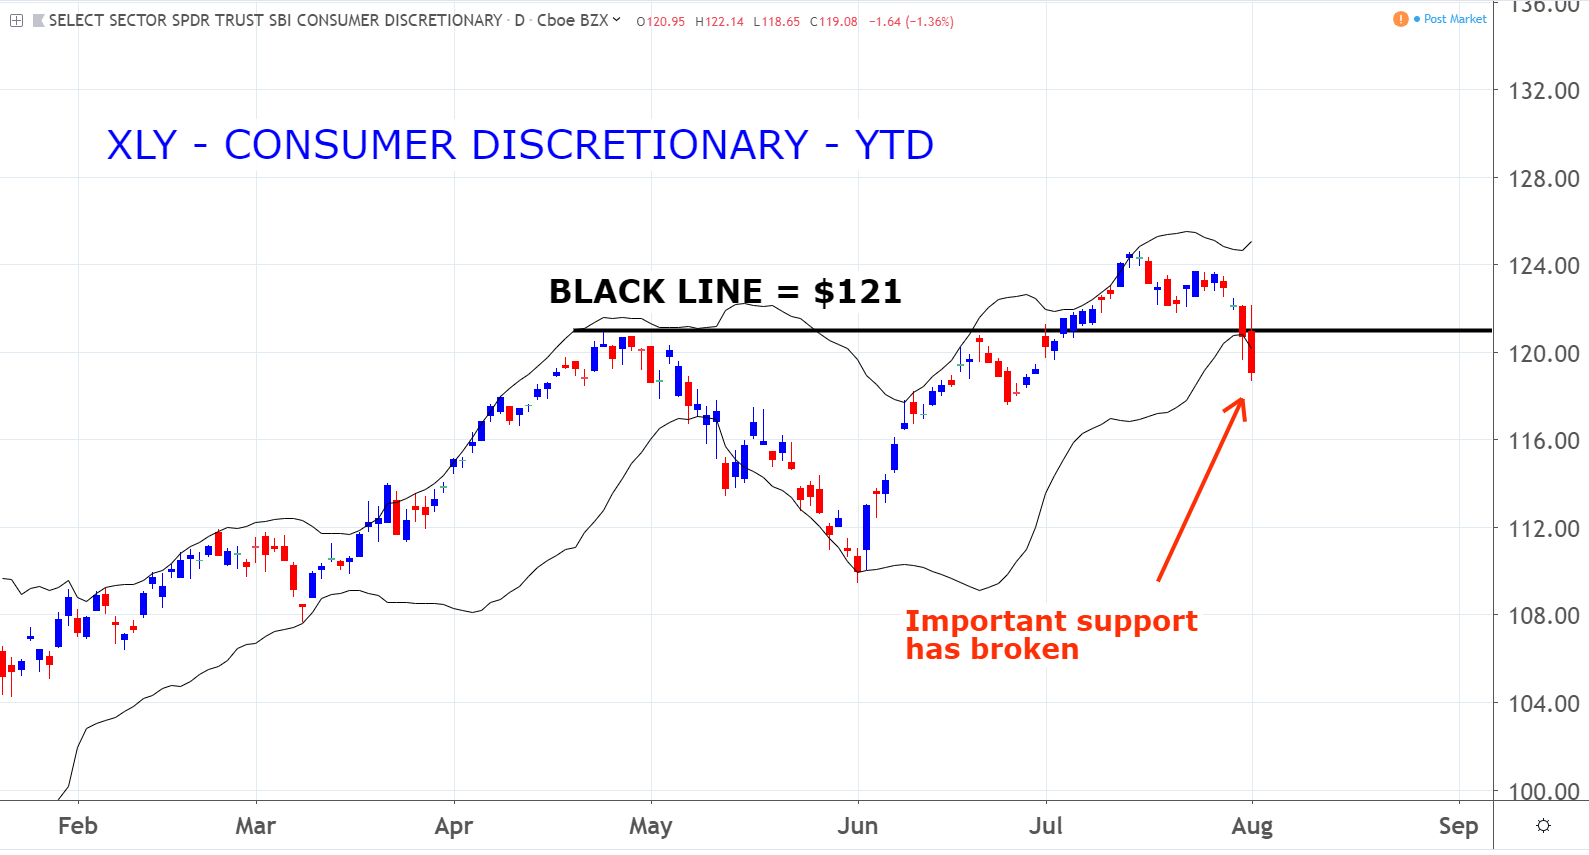 Consumer Discretionary Sector SPDR (XLY)